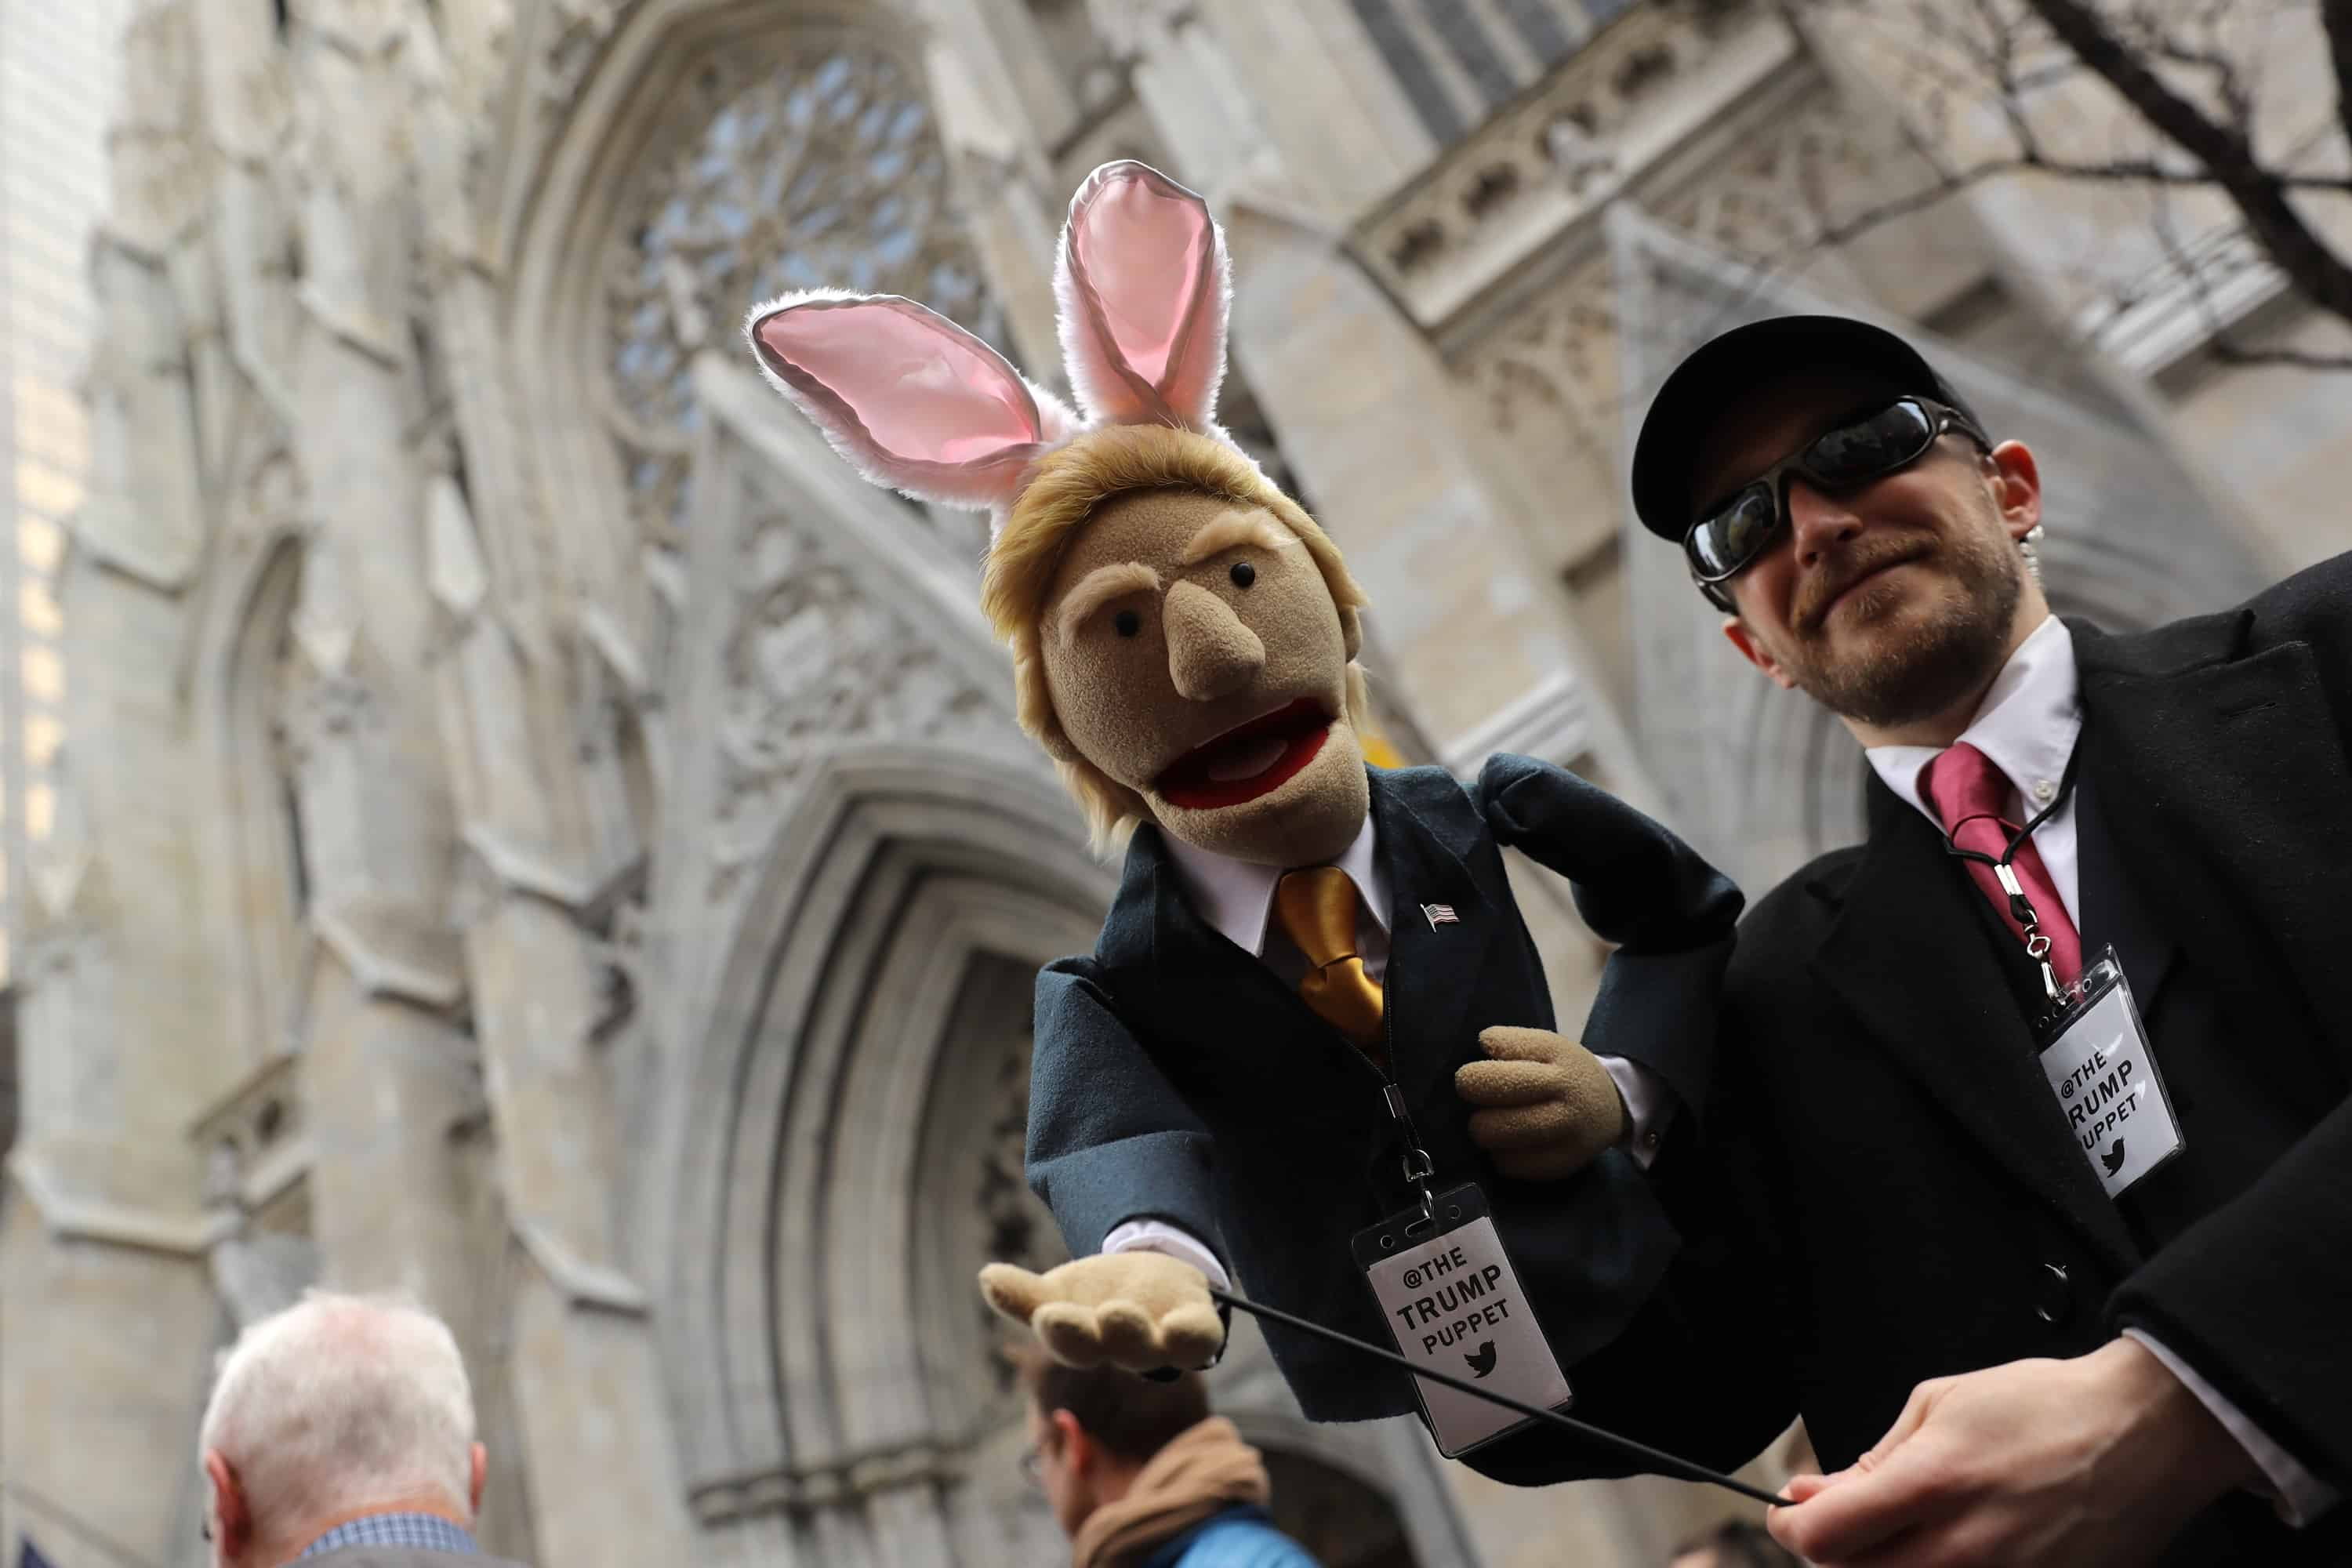 A Donald Trump puppet with bunny ears at the 2016 New York City Easter Parade on March 27, 2016 in New York City.